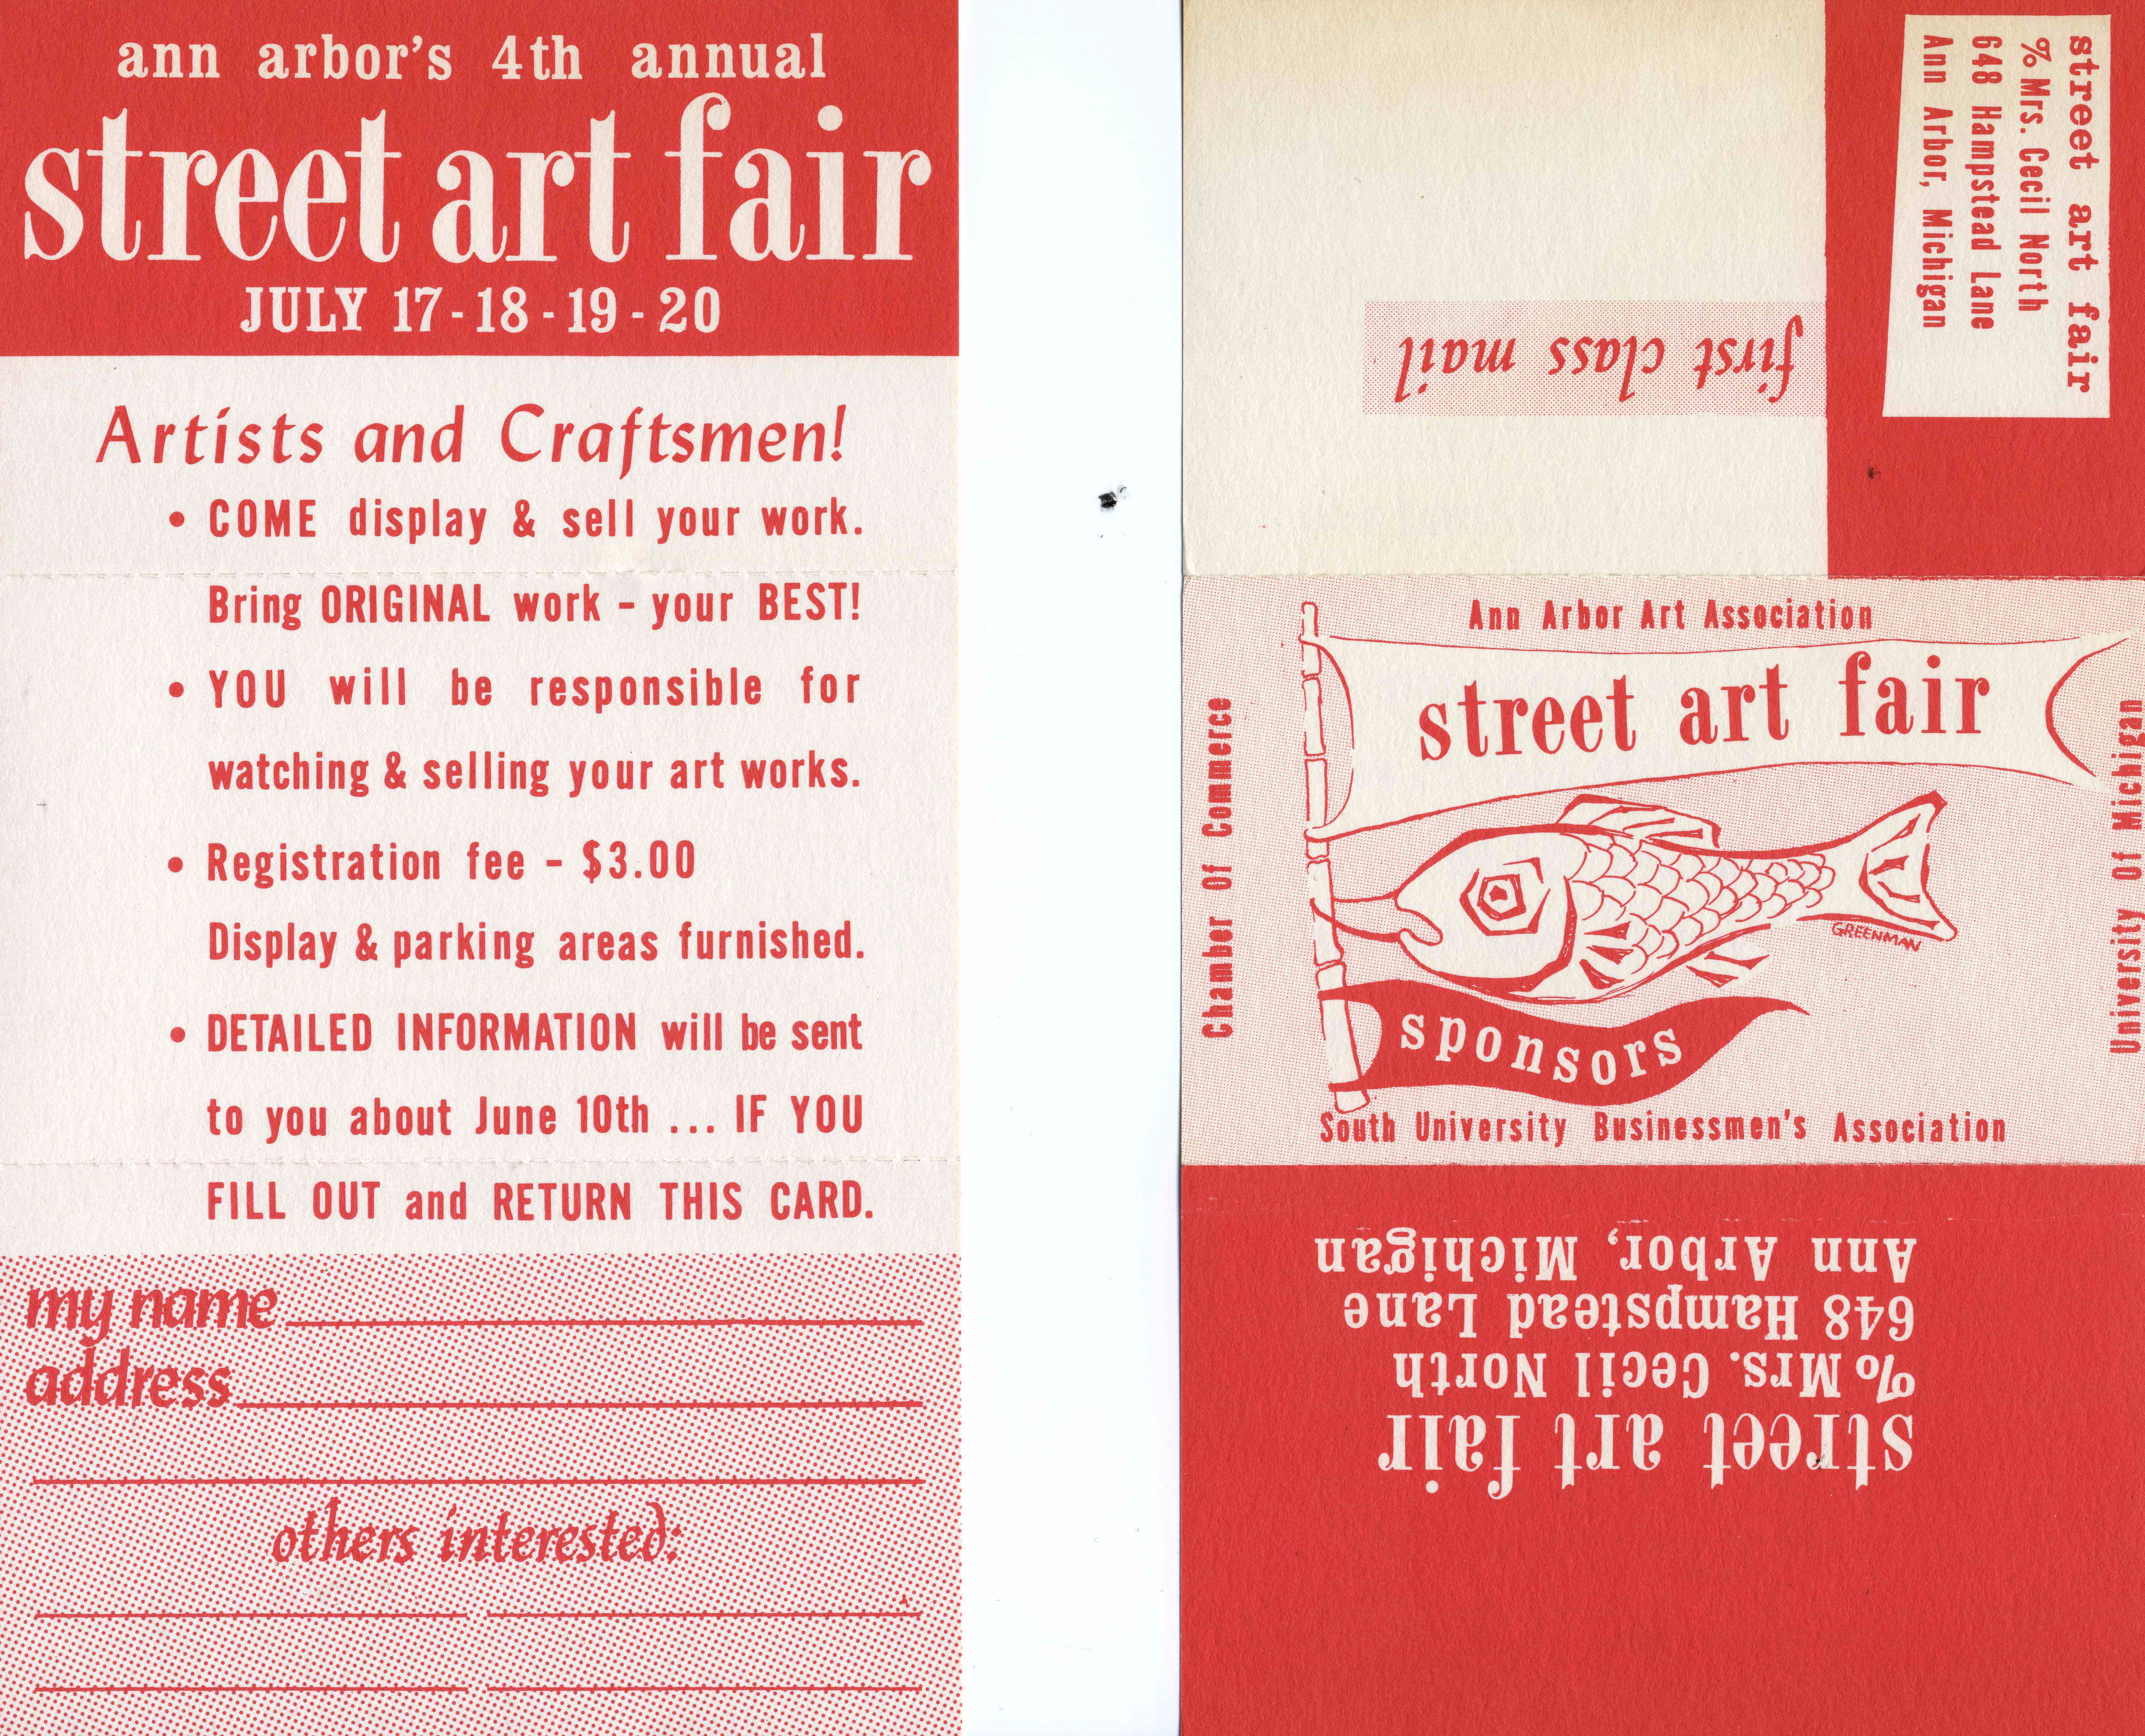 Artist Invitation Postcard, Street Art Fair, 1963 image